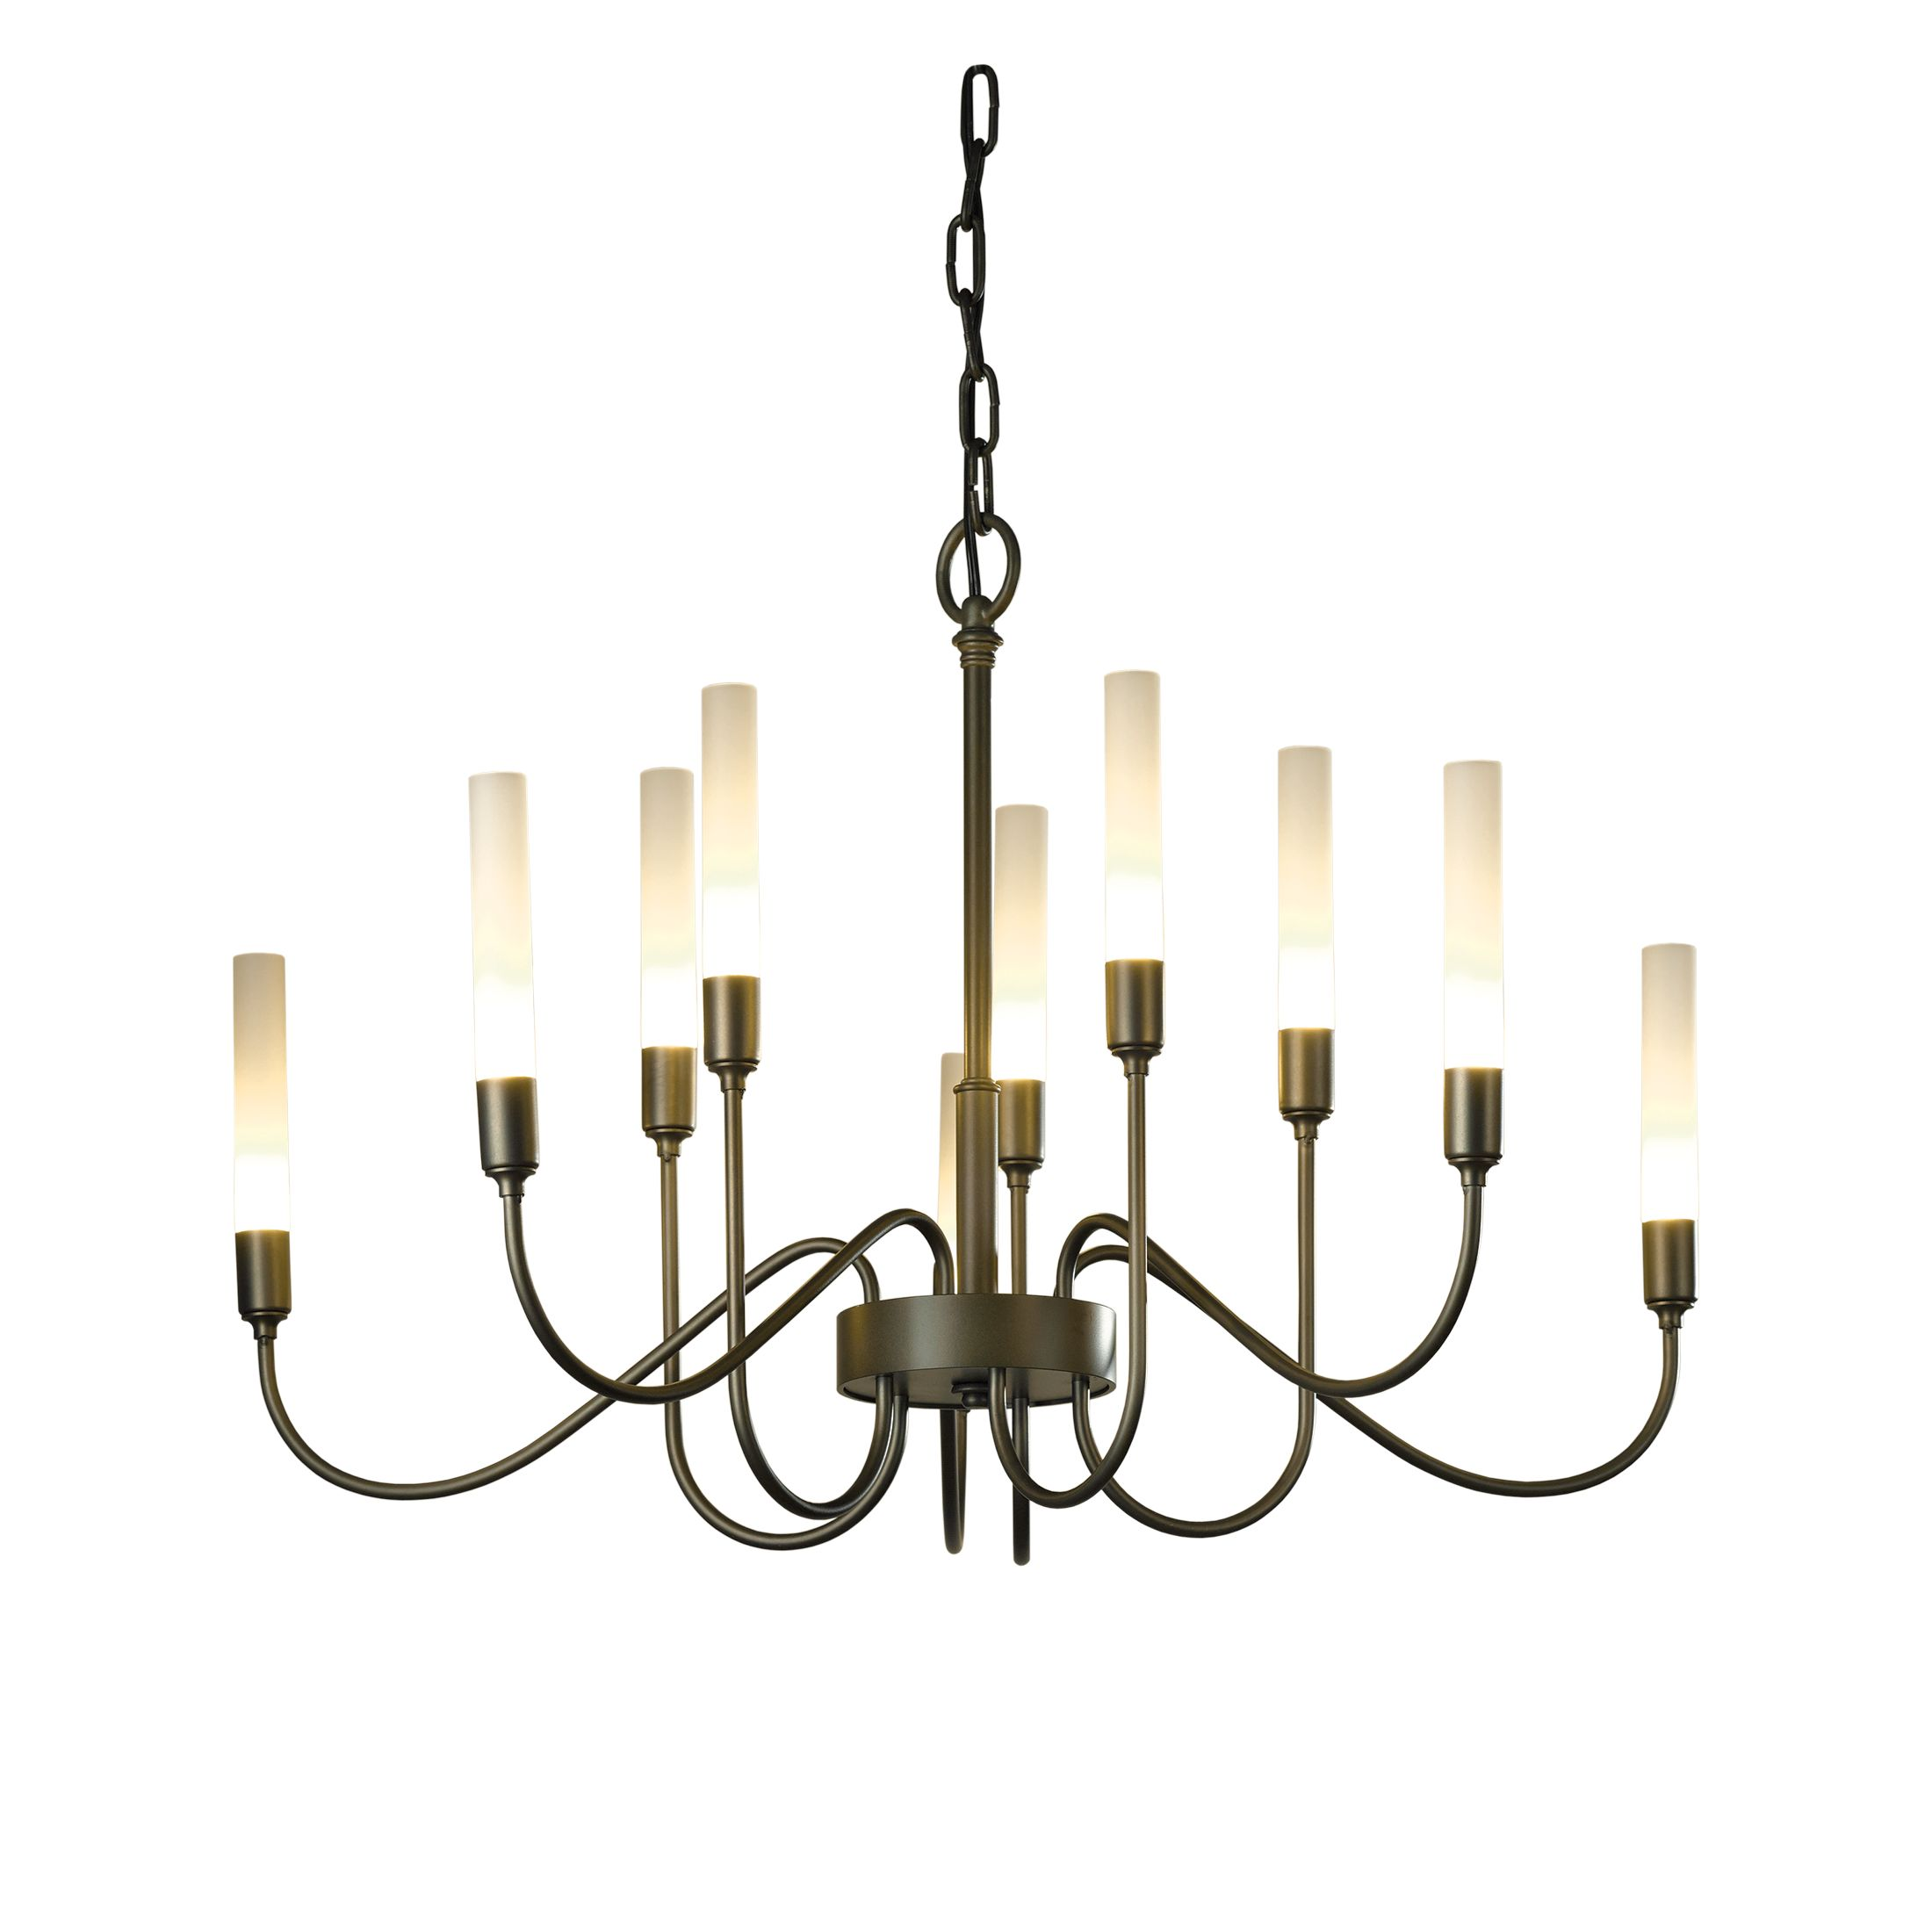 Thumbnail for Lisse 10 Arm Chandelier